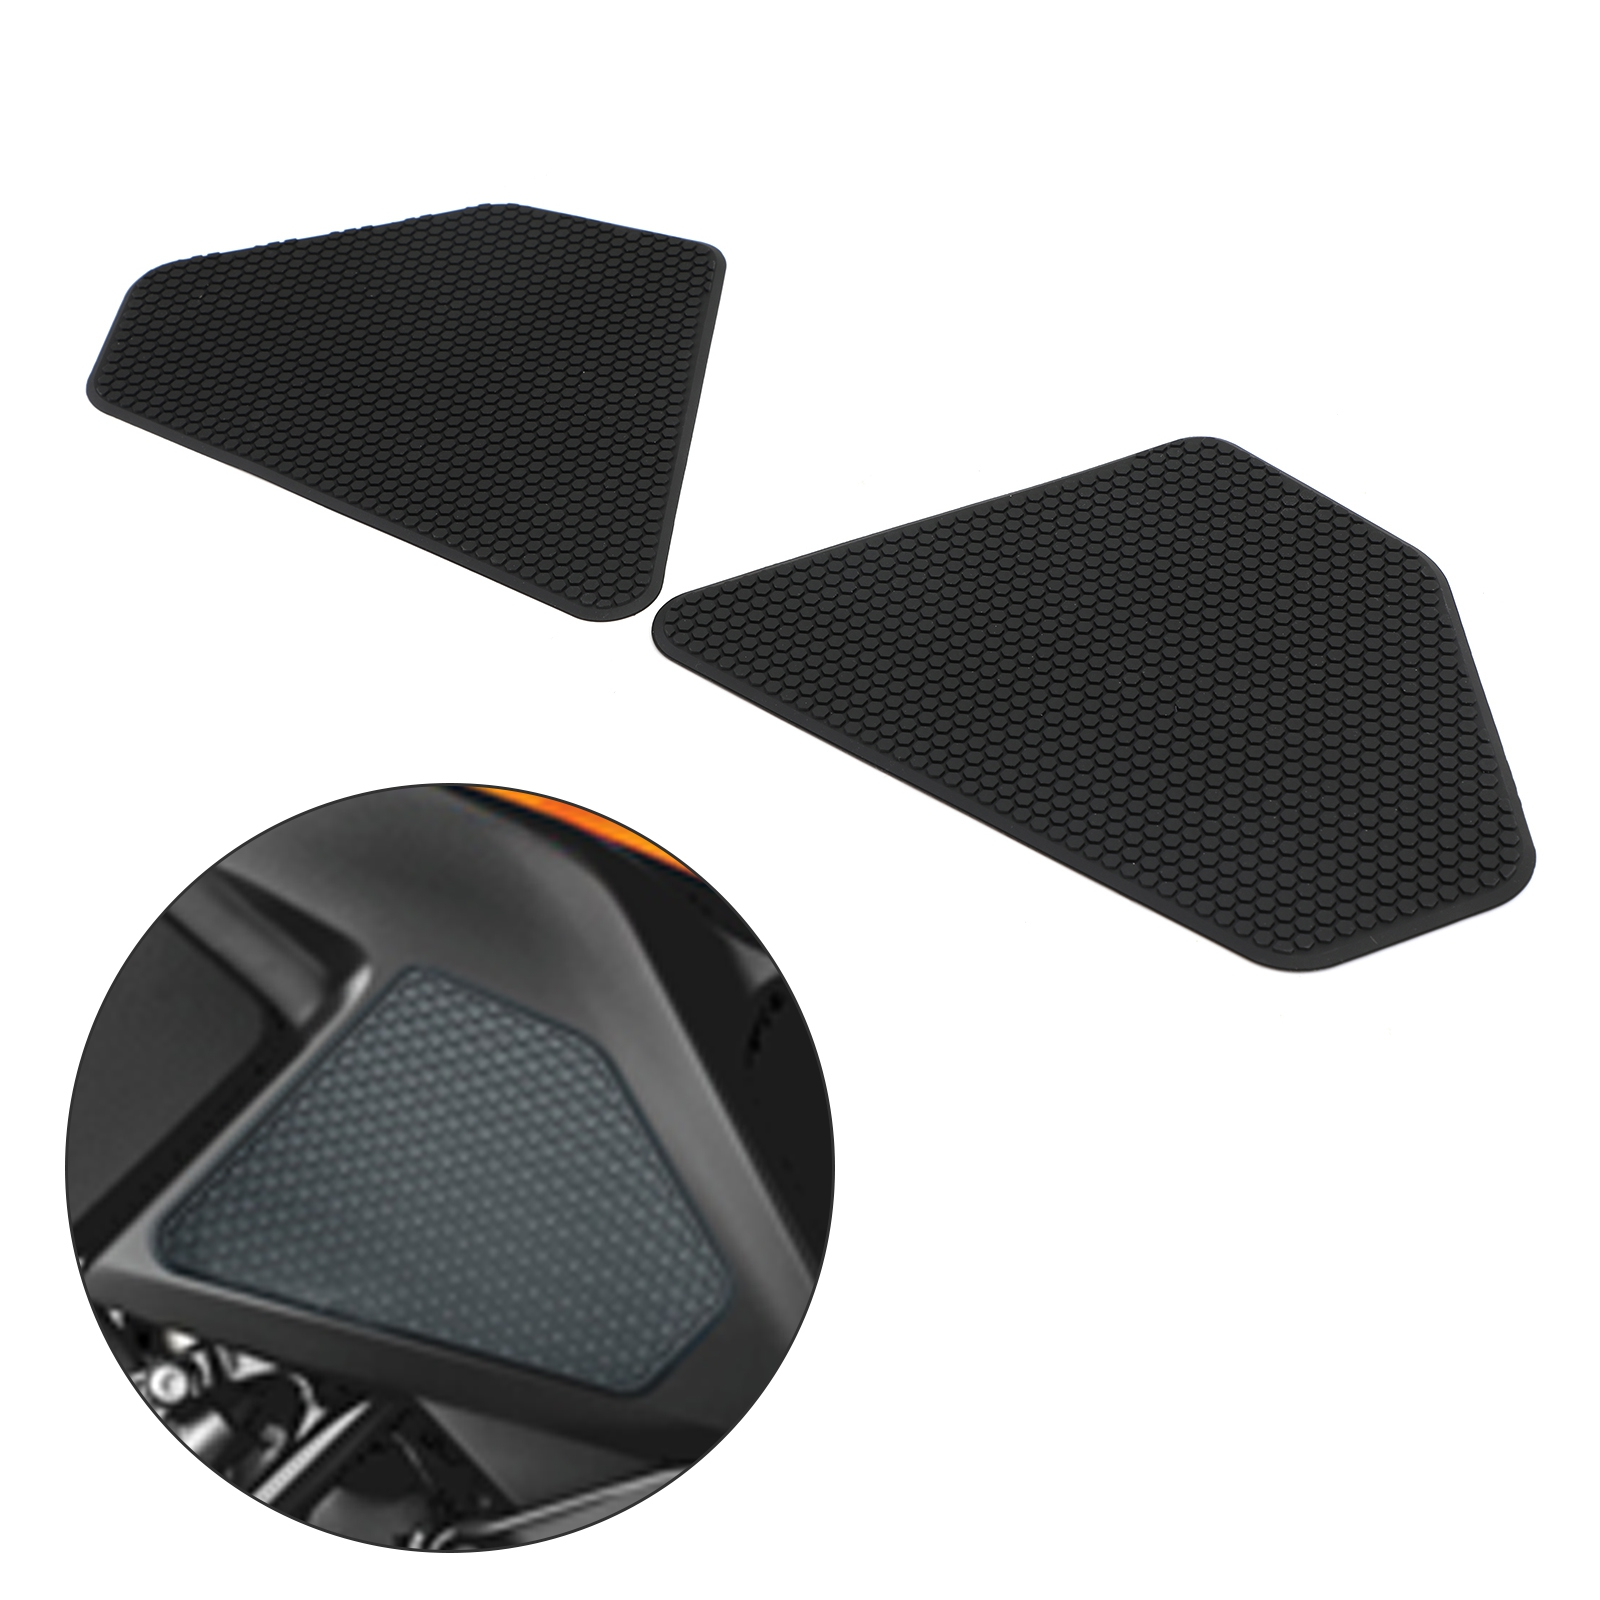 Artudatech Tank Traction Grips Boot Guard <font><b>Stickers</b></font> for KTM 1290 Super Adventure R S T <font><b>Duke</b></font> 690 Motorbike Accessories image